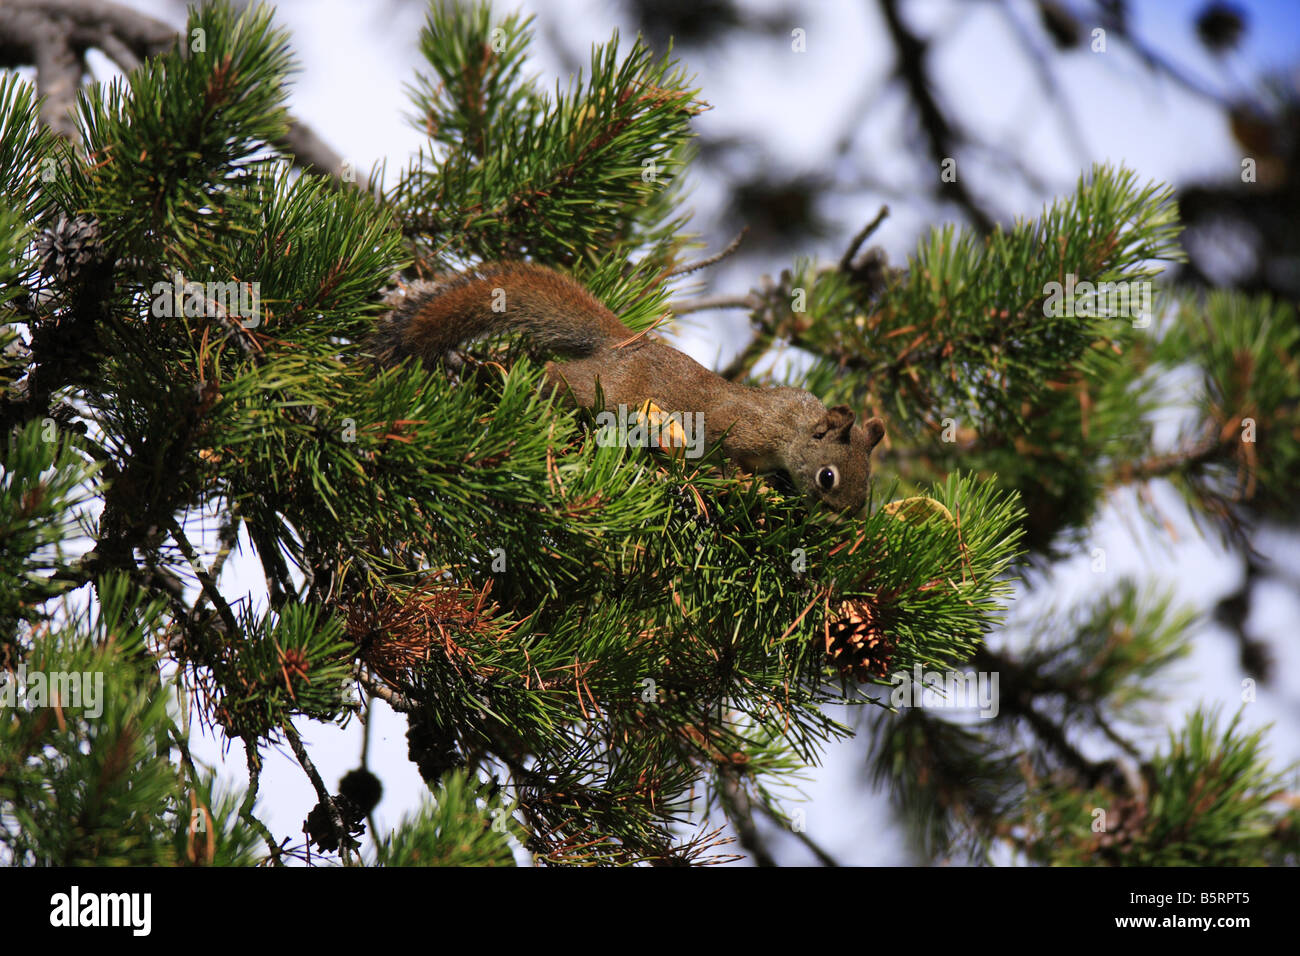 Red Squirrel harvesting Lodgepole Pine cones in fall, Teton National Park, Wyoming - Stock Image